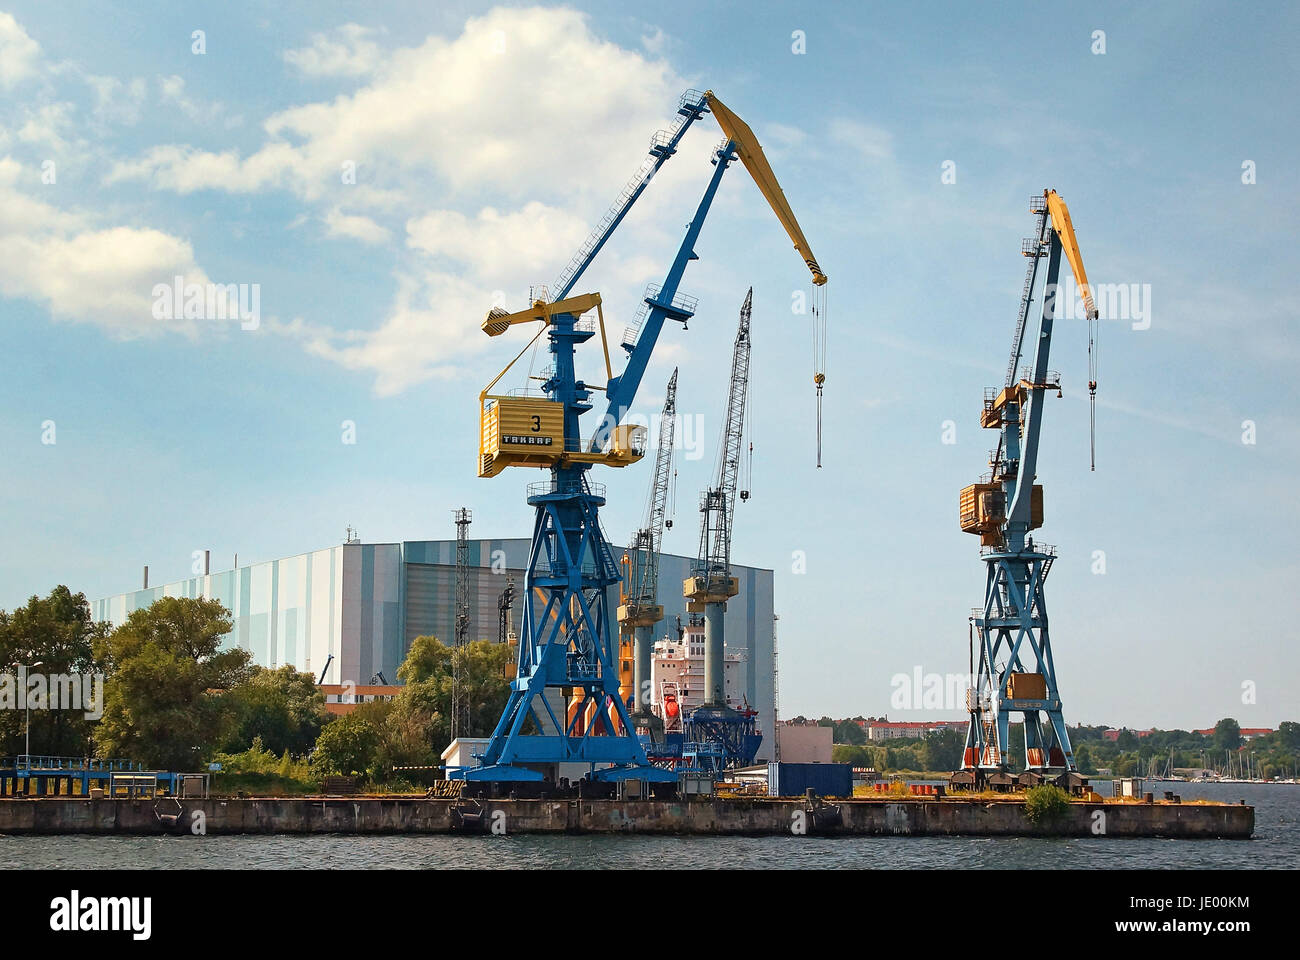 Hafen Hansestadt Wismar Deutschland / Port Hanseatic City Wismar Germany - Stock Image